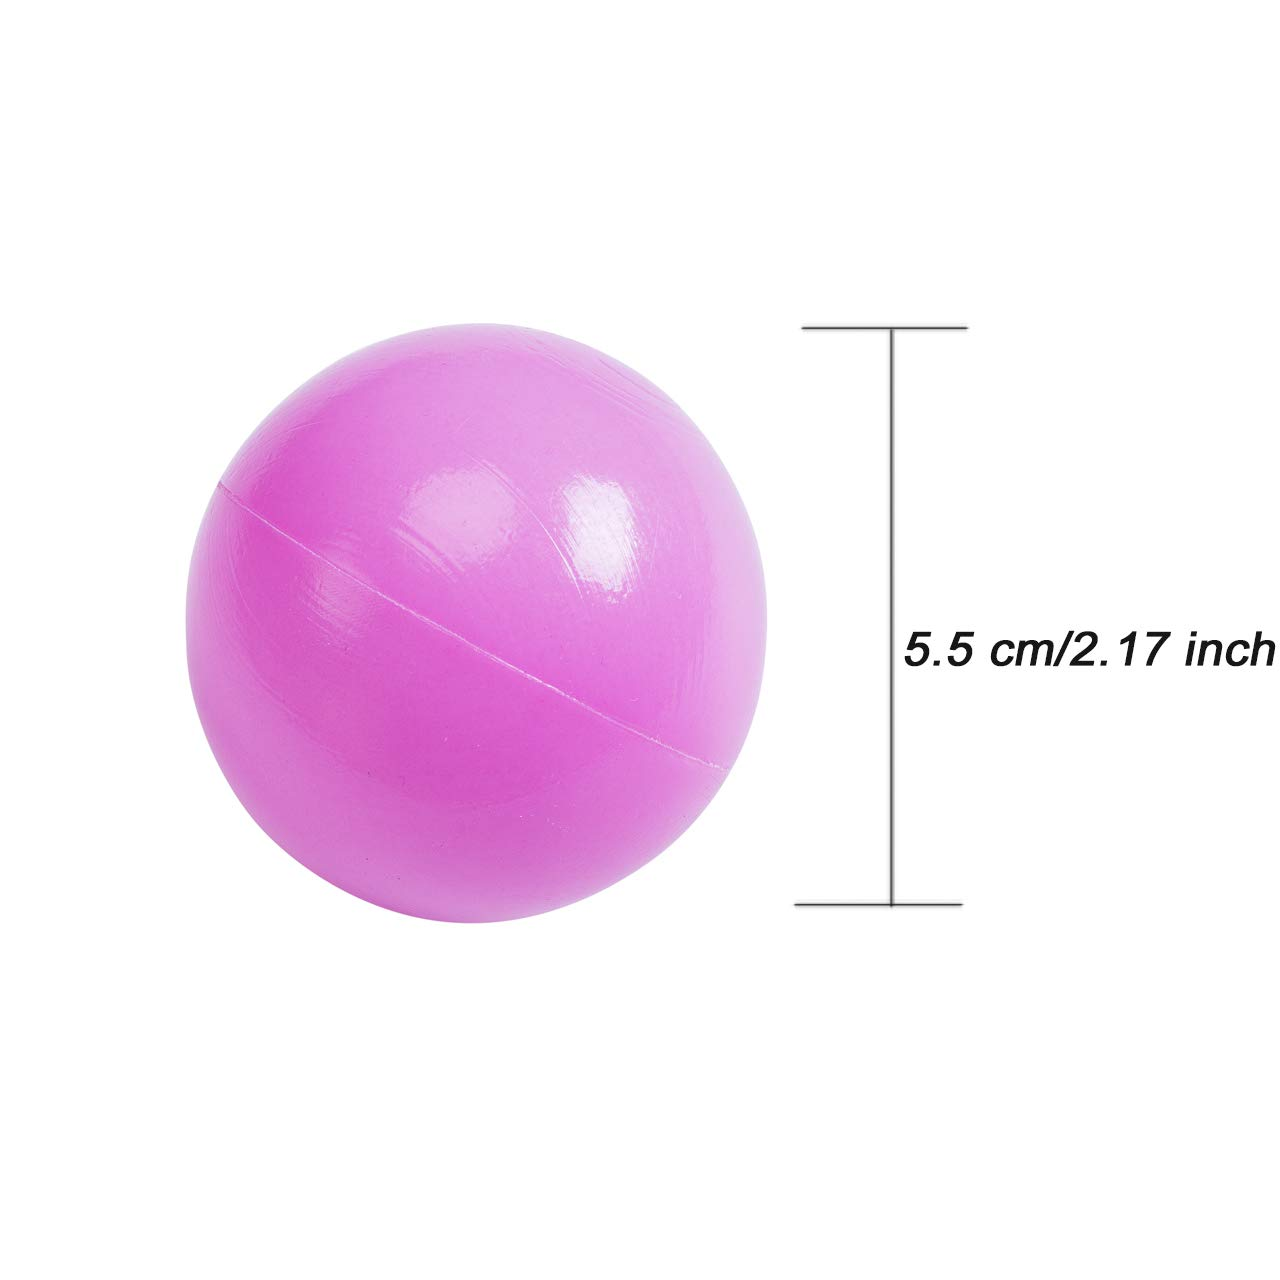 Binwwede Kids Ocean Ball 5 Colors Toddler Baby Ball Pit Pack of 100 Plastic Play Balls (20pcs) by Binwwede (Image #7)